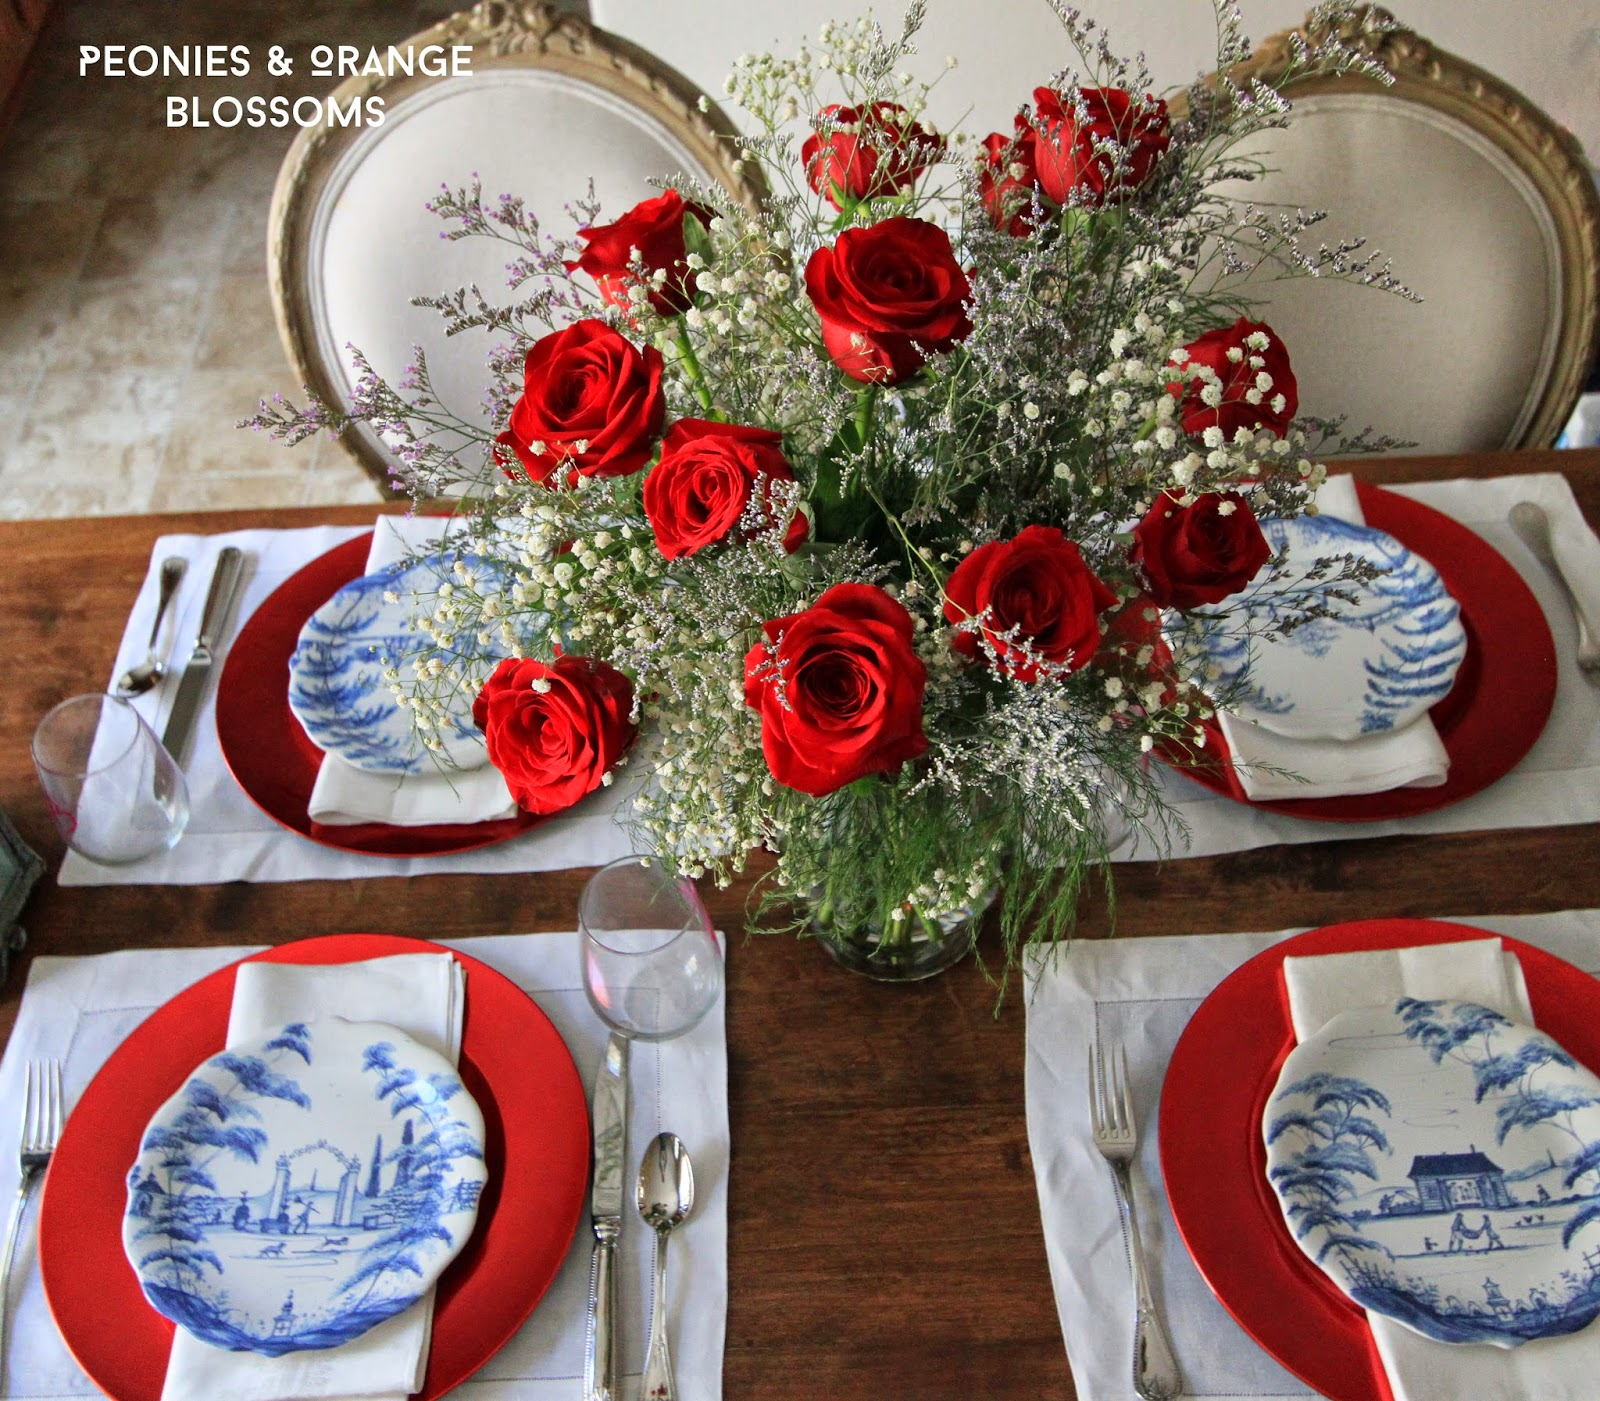 Peonies and orange blossoms patriotic table decorations for Decoration day